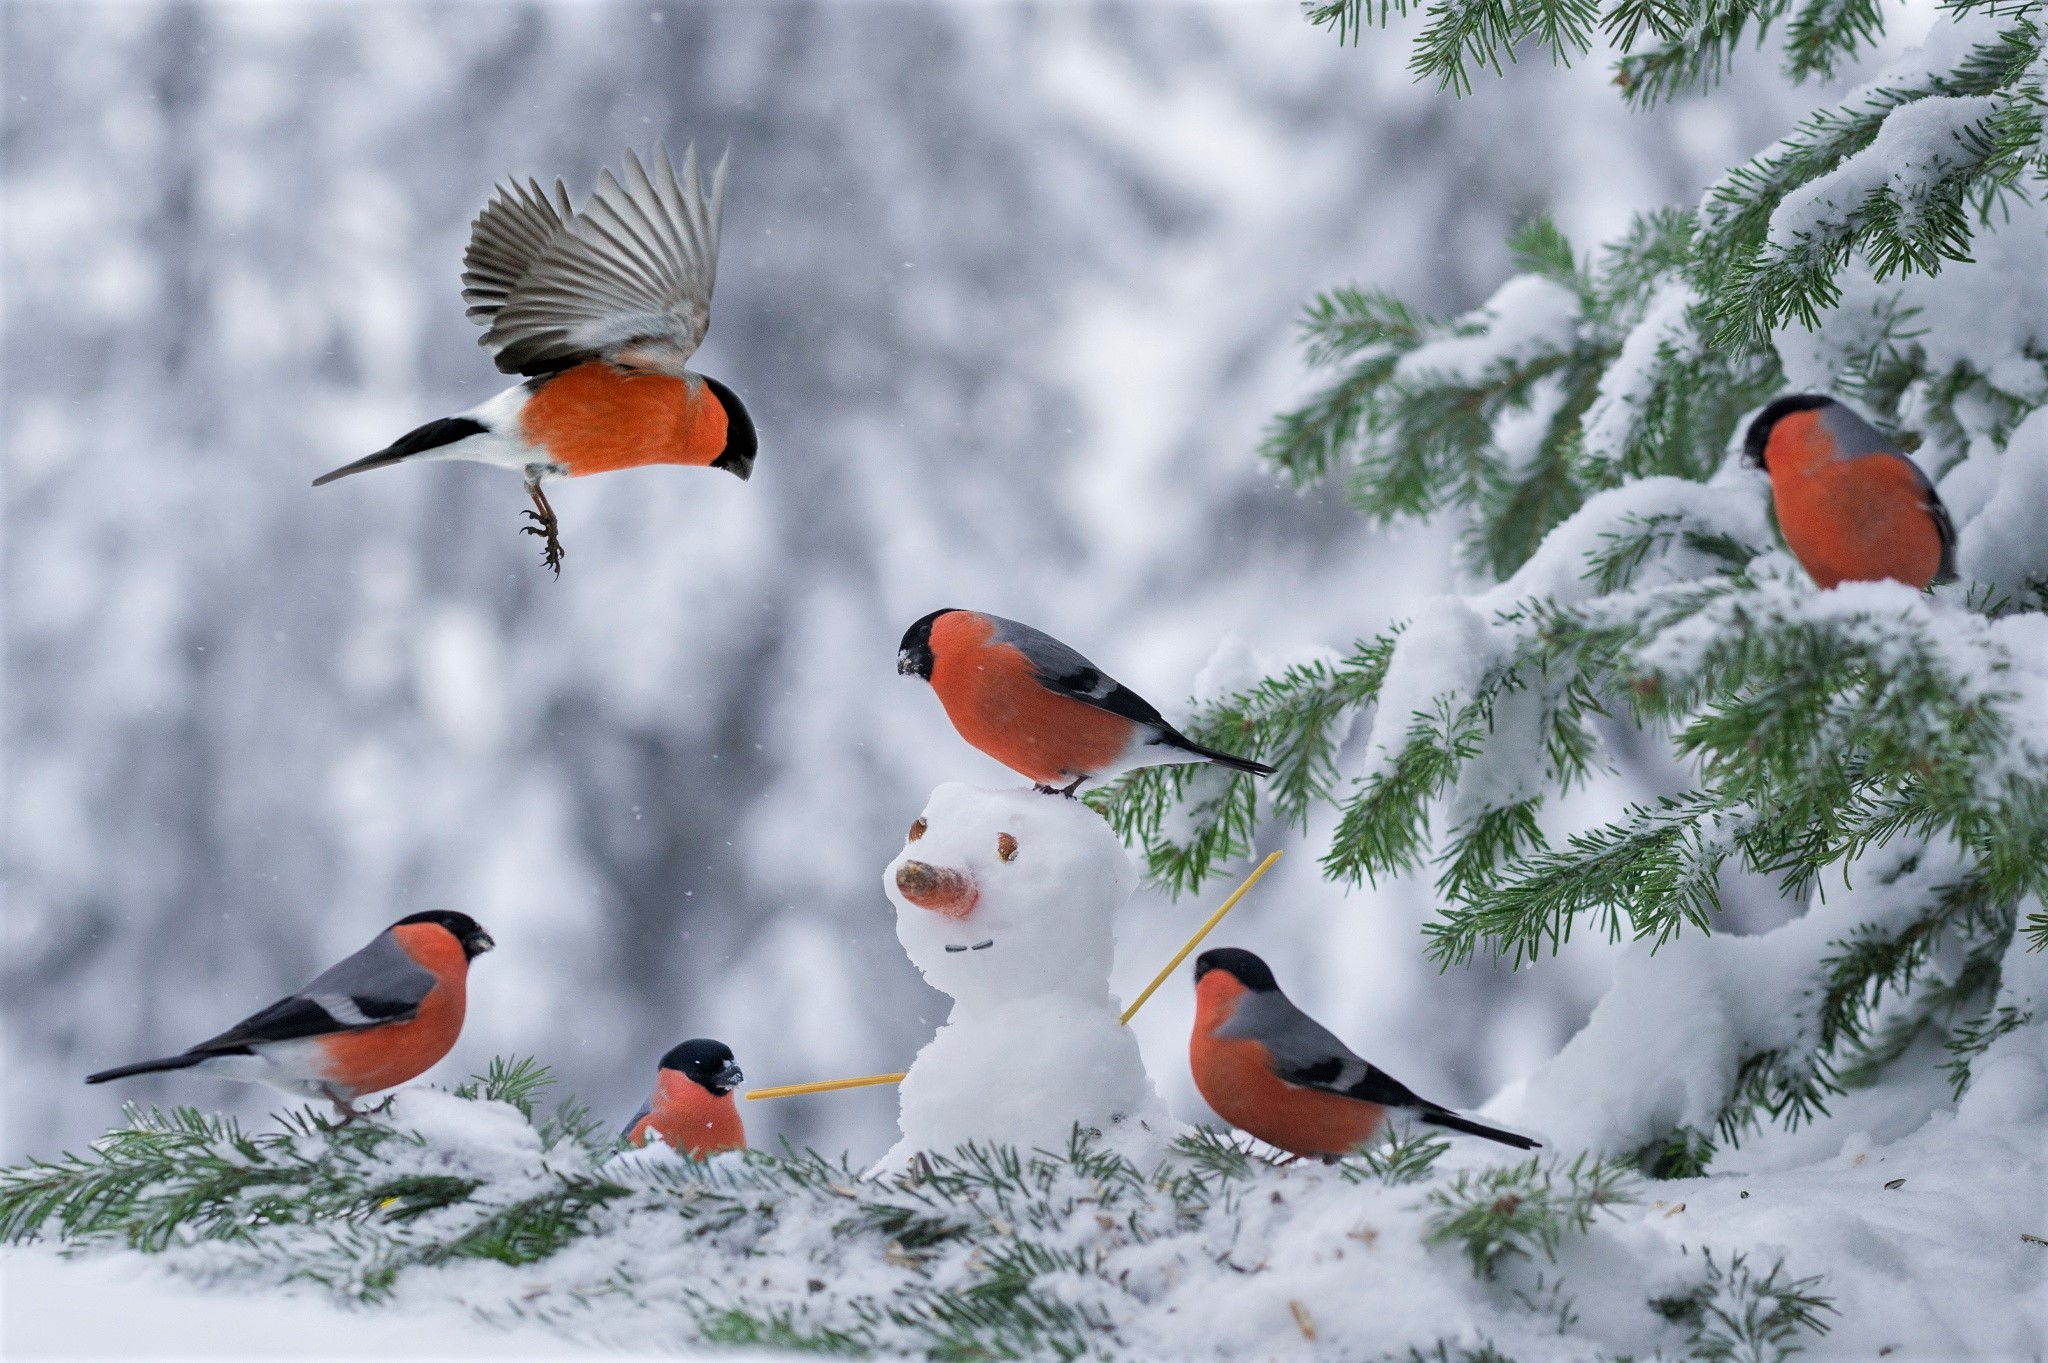 bullfinches in snow covered tree fond d 39 cran hd arri re plan 2048x1363 id 866026. Black Bedroom Furniture Sets. Home Design Ideas